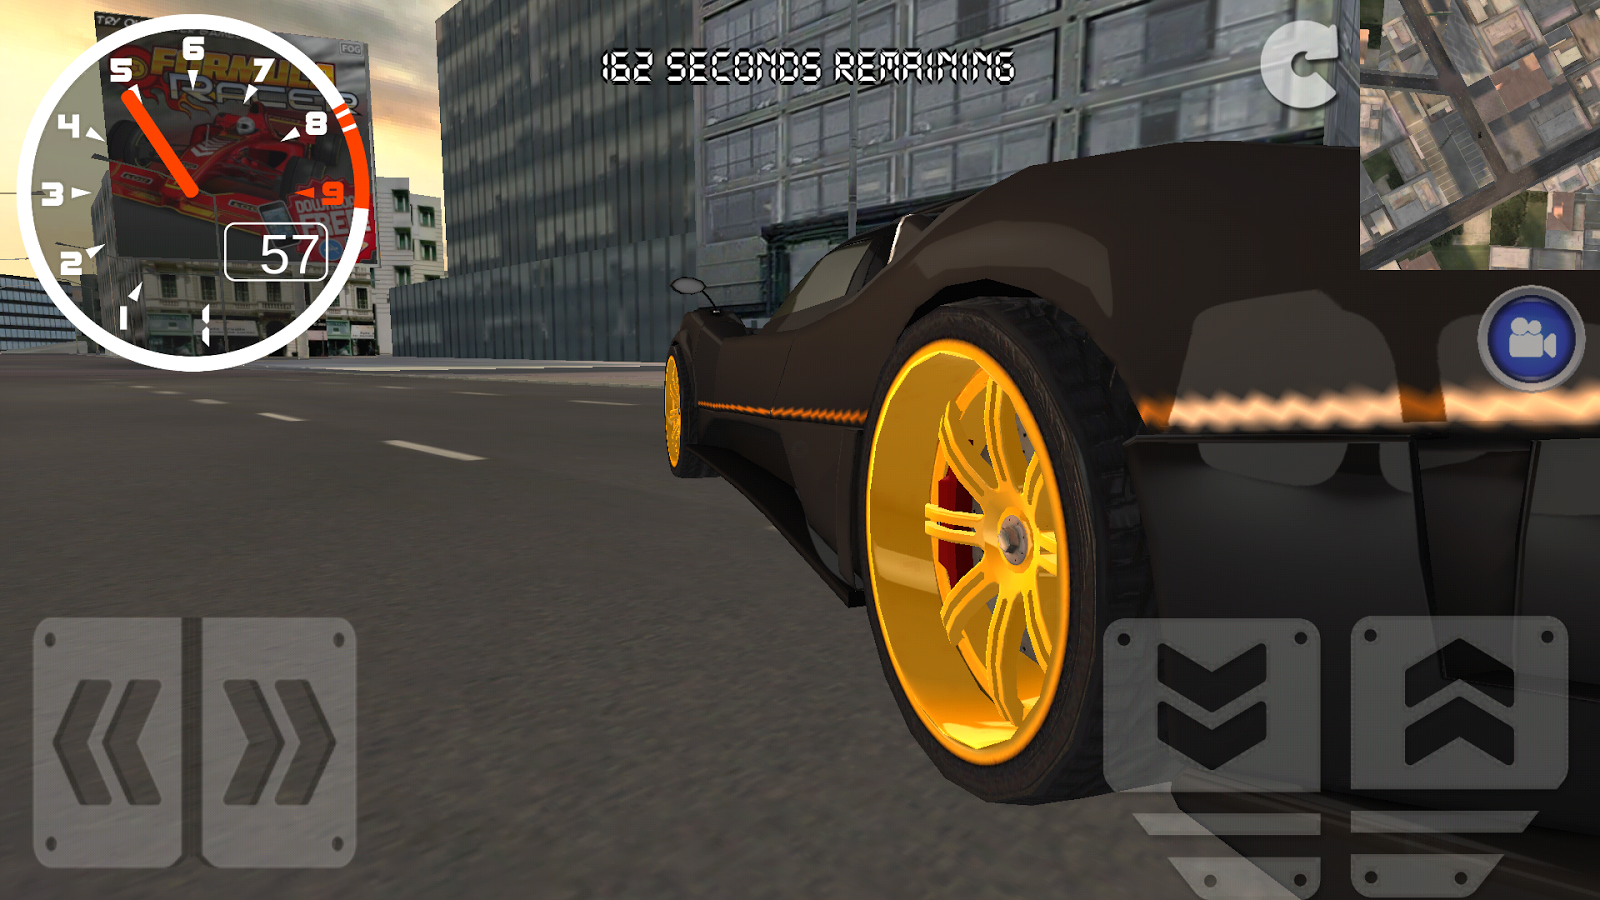 Super car city driving sim free games free online - Race Car City Driving Sim Screenshot